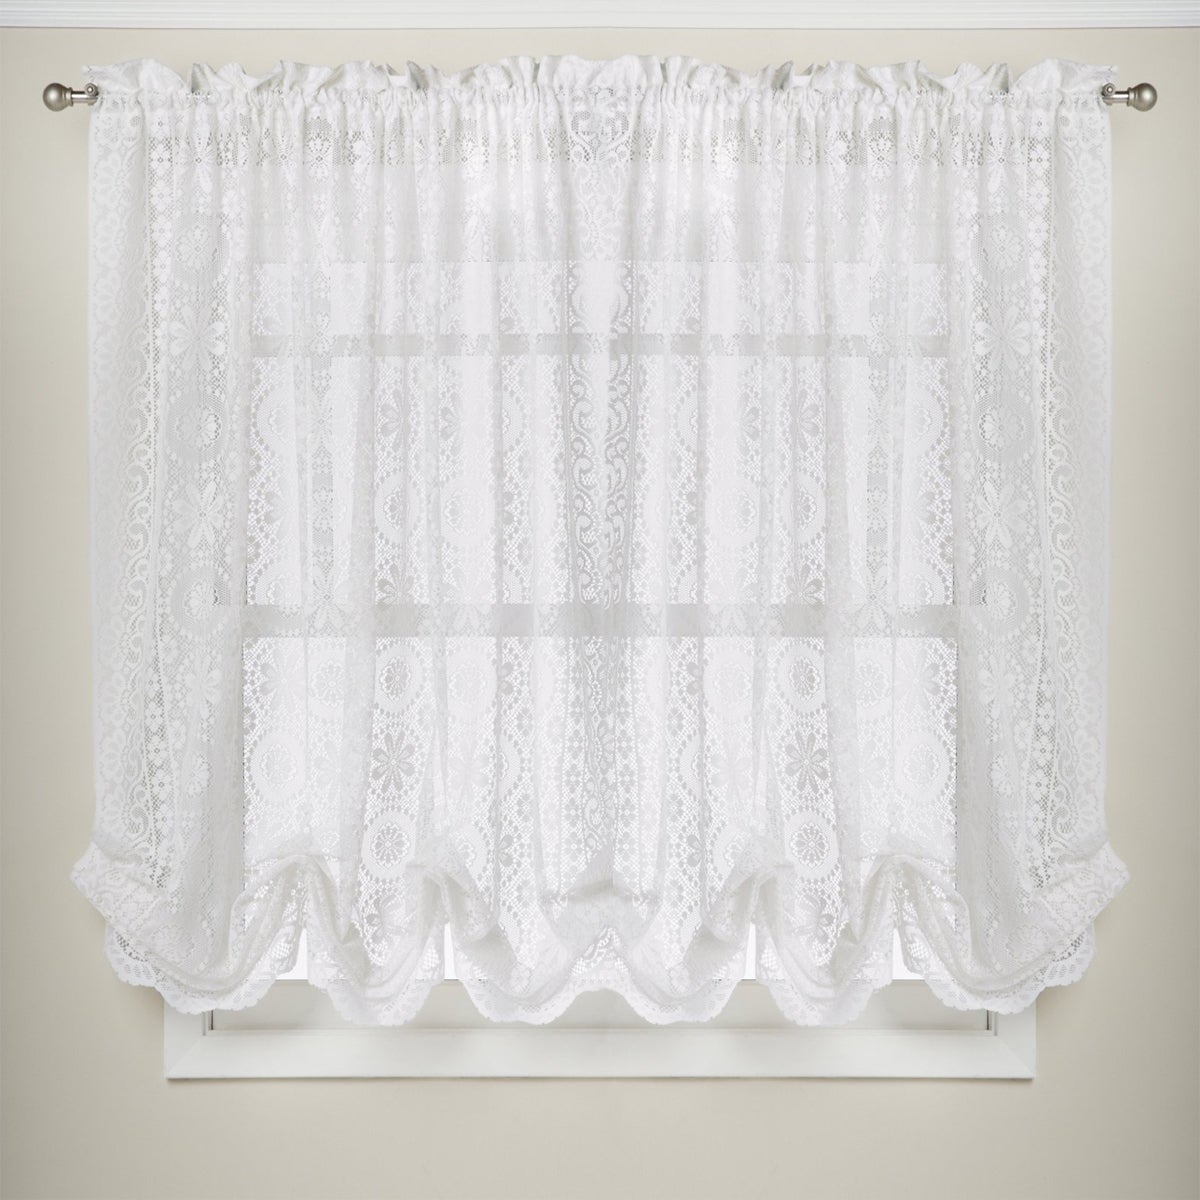 White Lace Luxurious Old World Style Kitchen Curtains Tiers, Shade Or Valances Pertaining To Luxurious Old World Style Lace Window Curtain Panels (View 7 of 20)